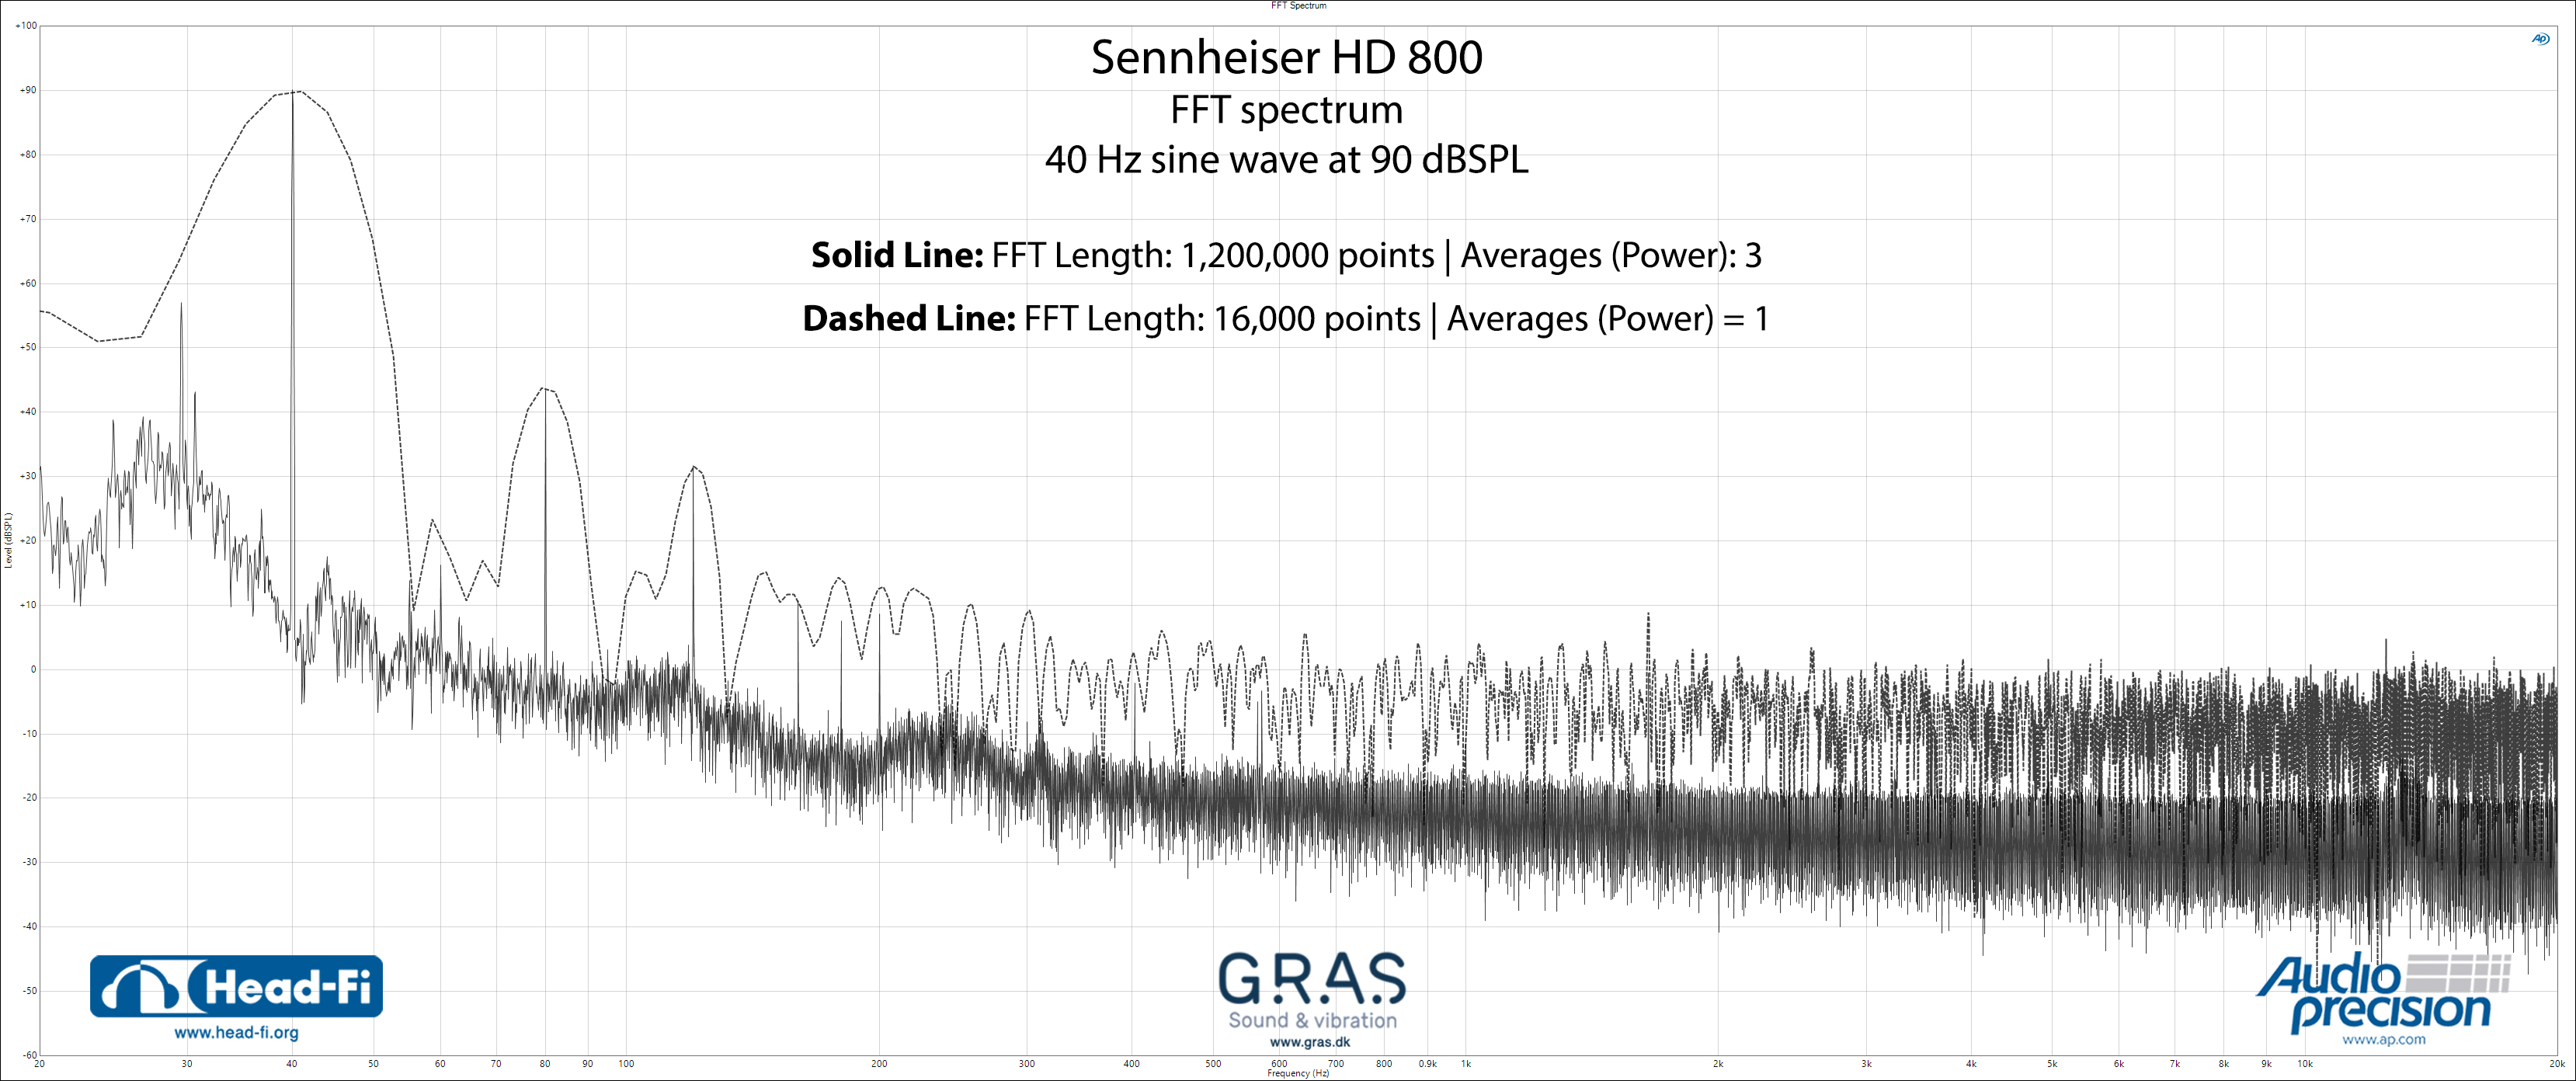 FFT-Spectrum---16000-points---no-average-AND-1.2M-points-average-3-fixed-label.jpg